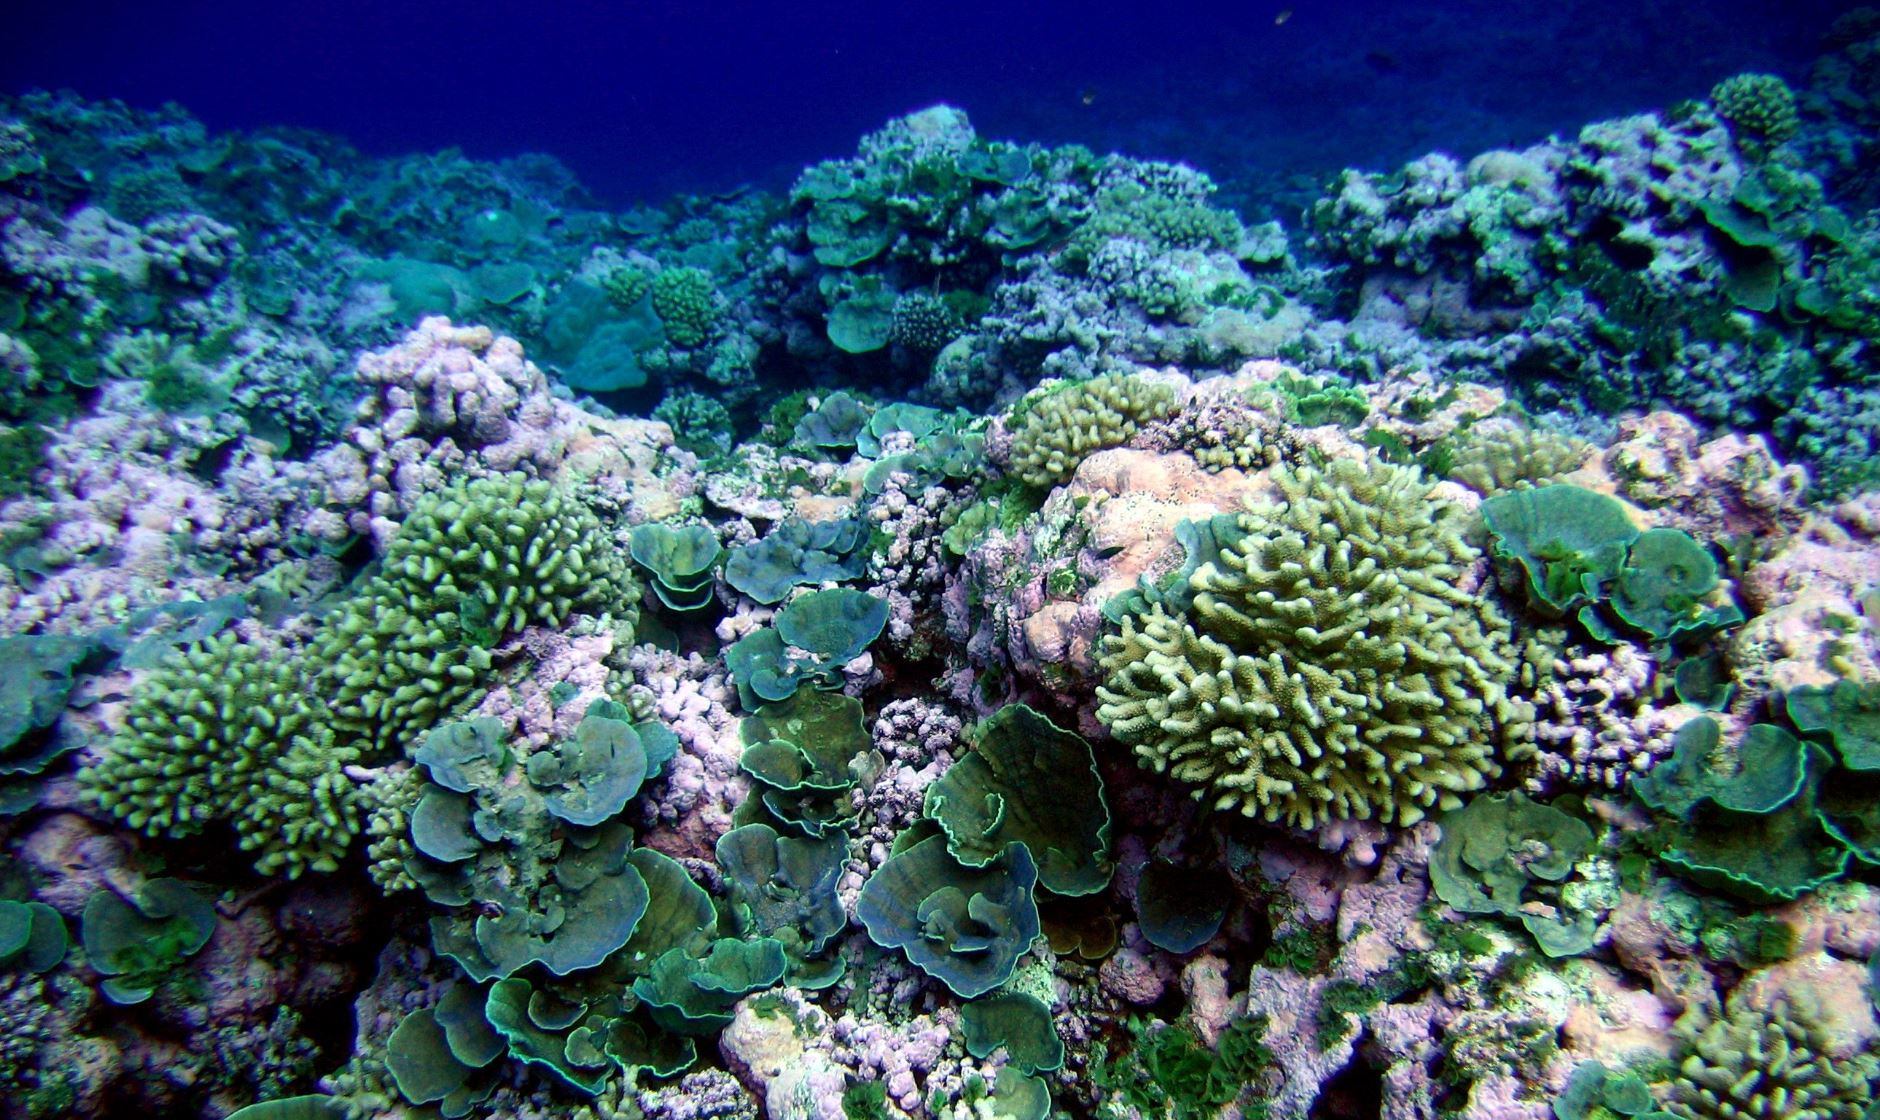 A healthy coral reef at Swains island, American Samoa. - Image Credit:  NOAA/NMFS/PIFSC/CRED, Oceanography Team. ,  CC BY